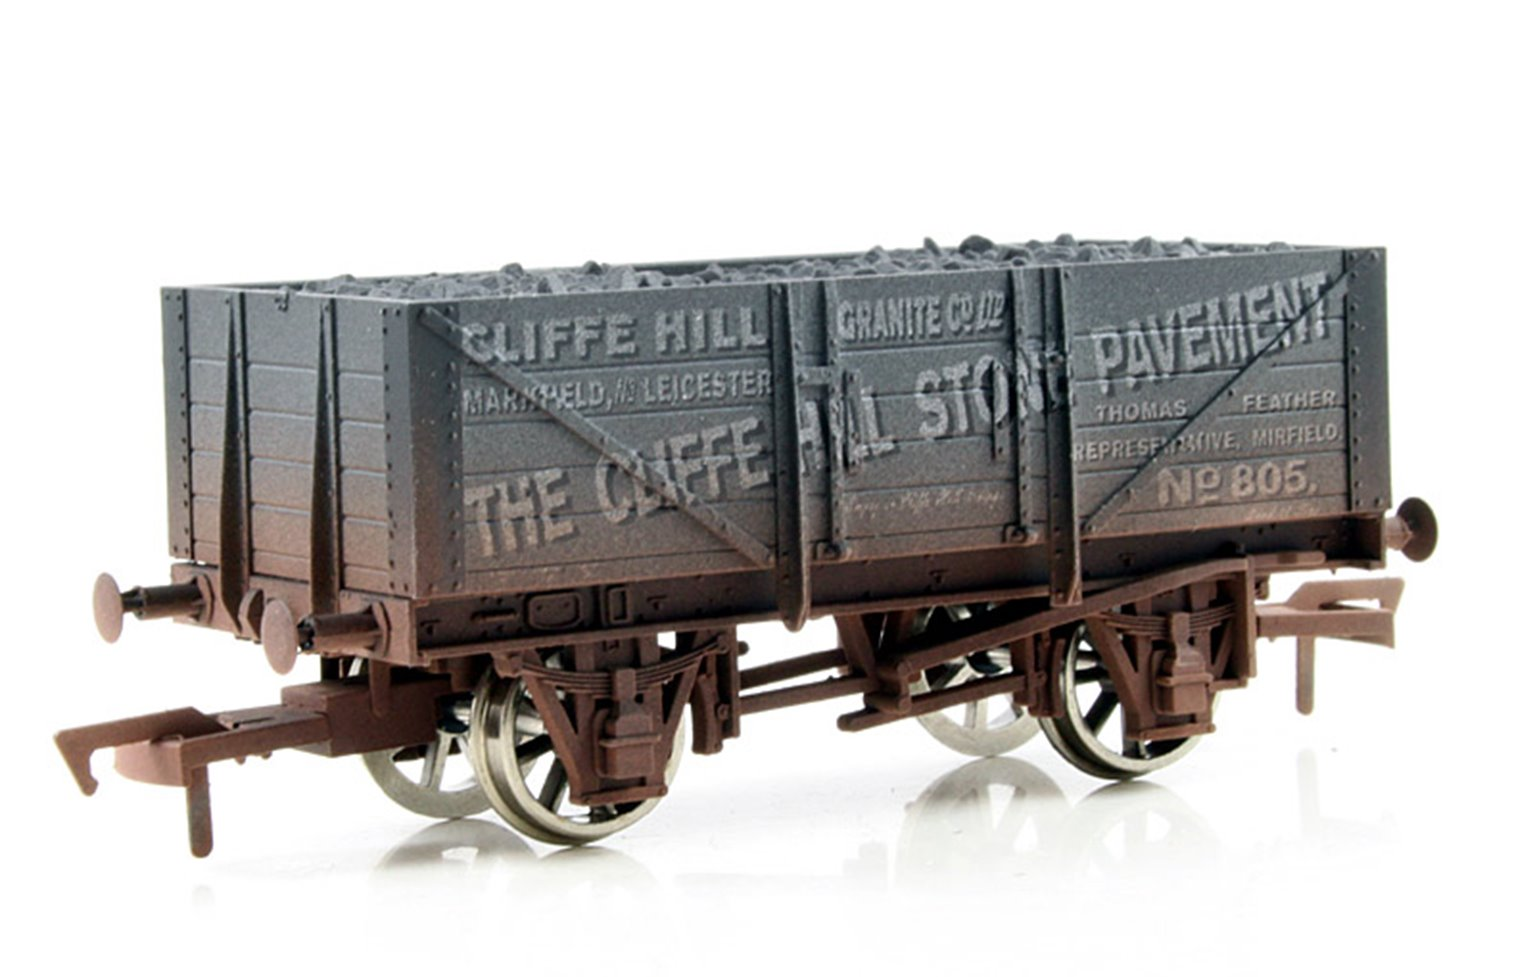 Cliffe Hall 5 Plank Wagon - Weathered